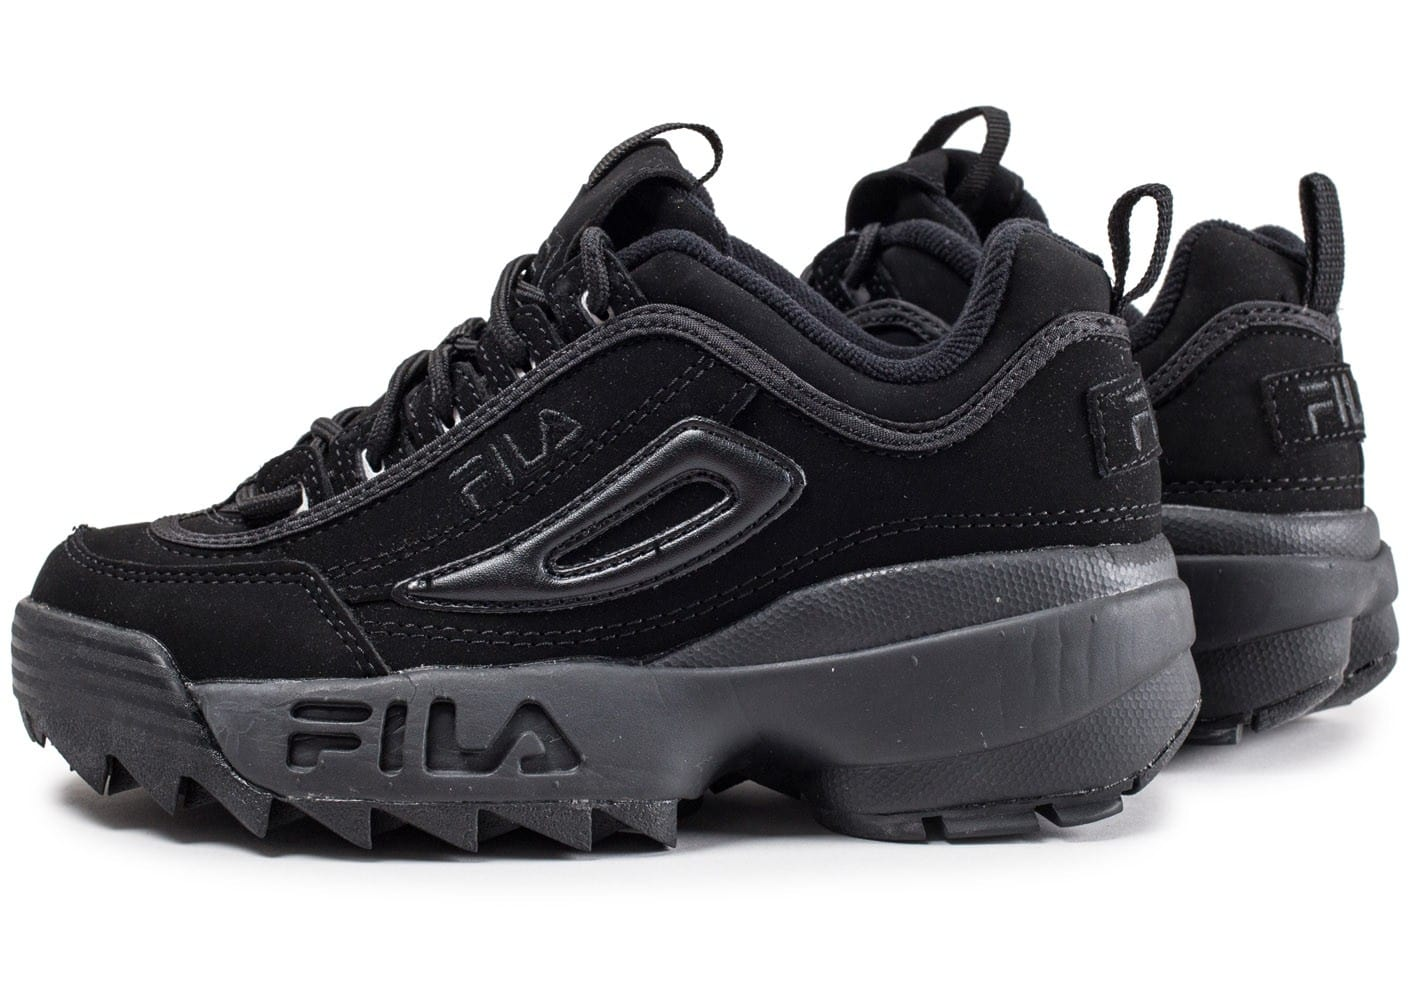 fila disruptor ii junior noire chaussures black friday chaussures et baskets chausport. Black Bedroom Furniture Sets. Home Design Ideas